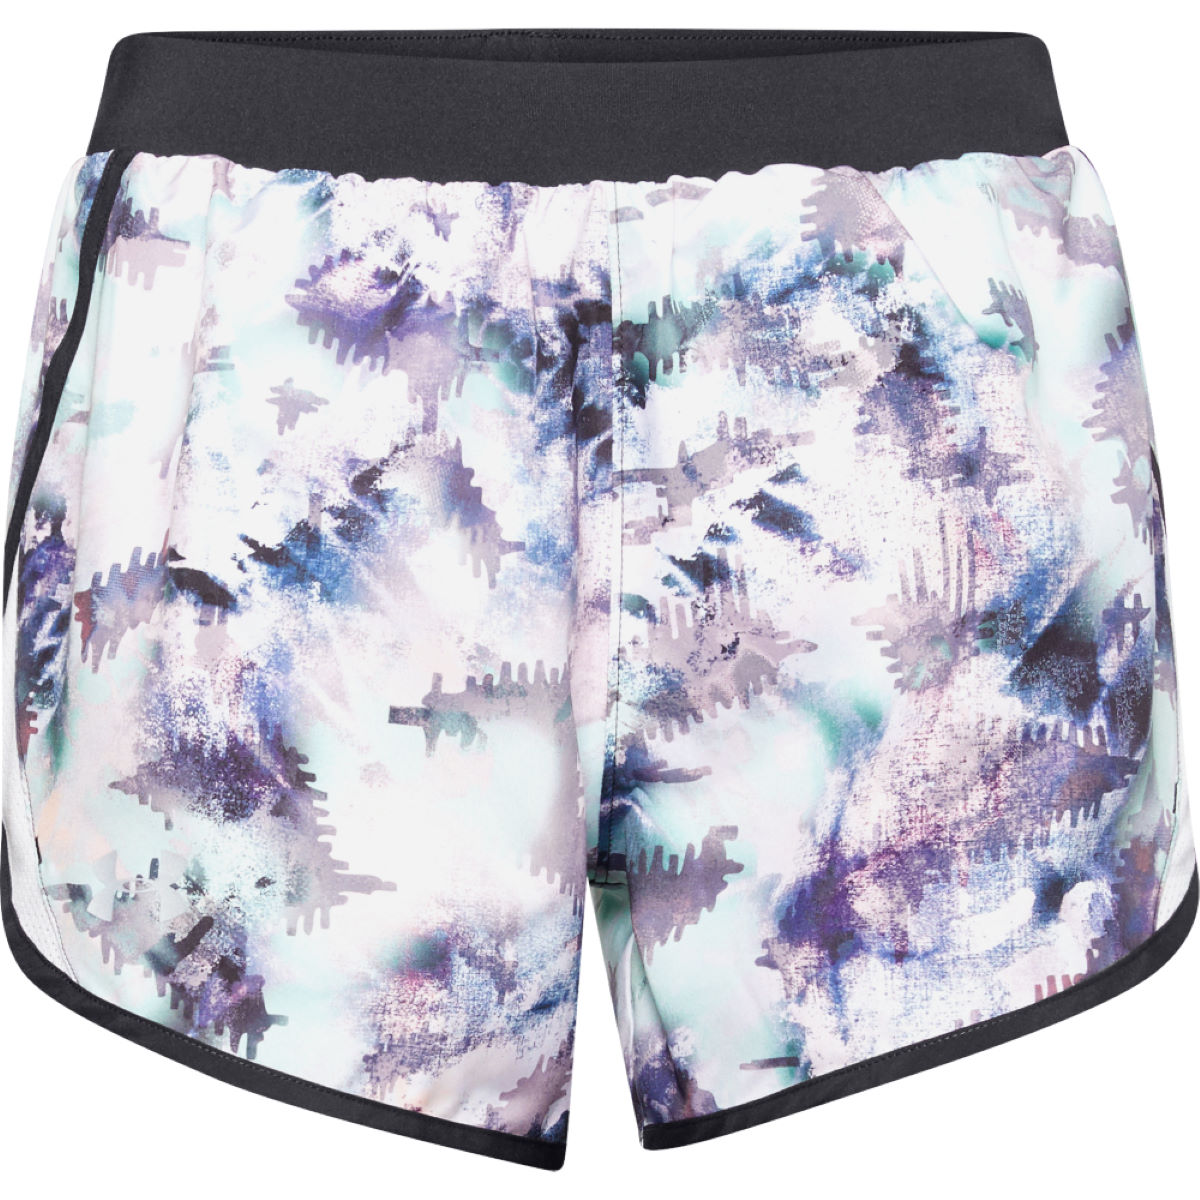 Under Armour Fly By 2.0 Printed Running Shorts - S Blue  Shorts